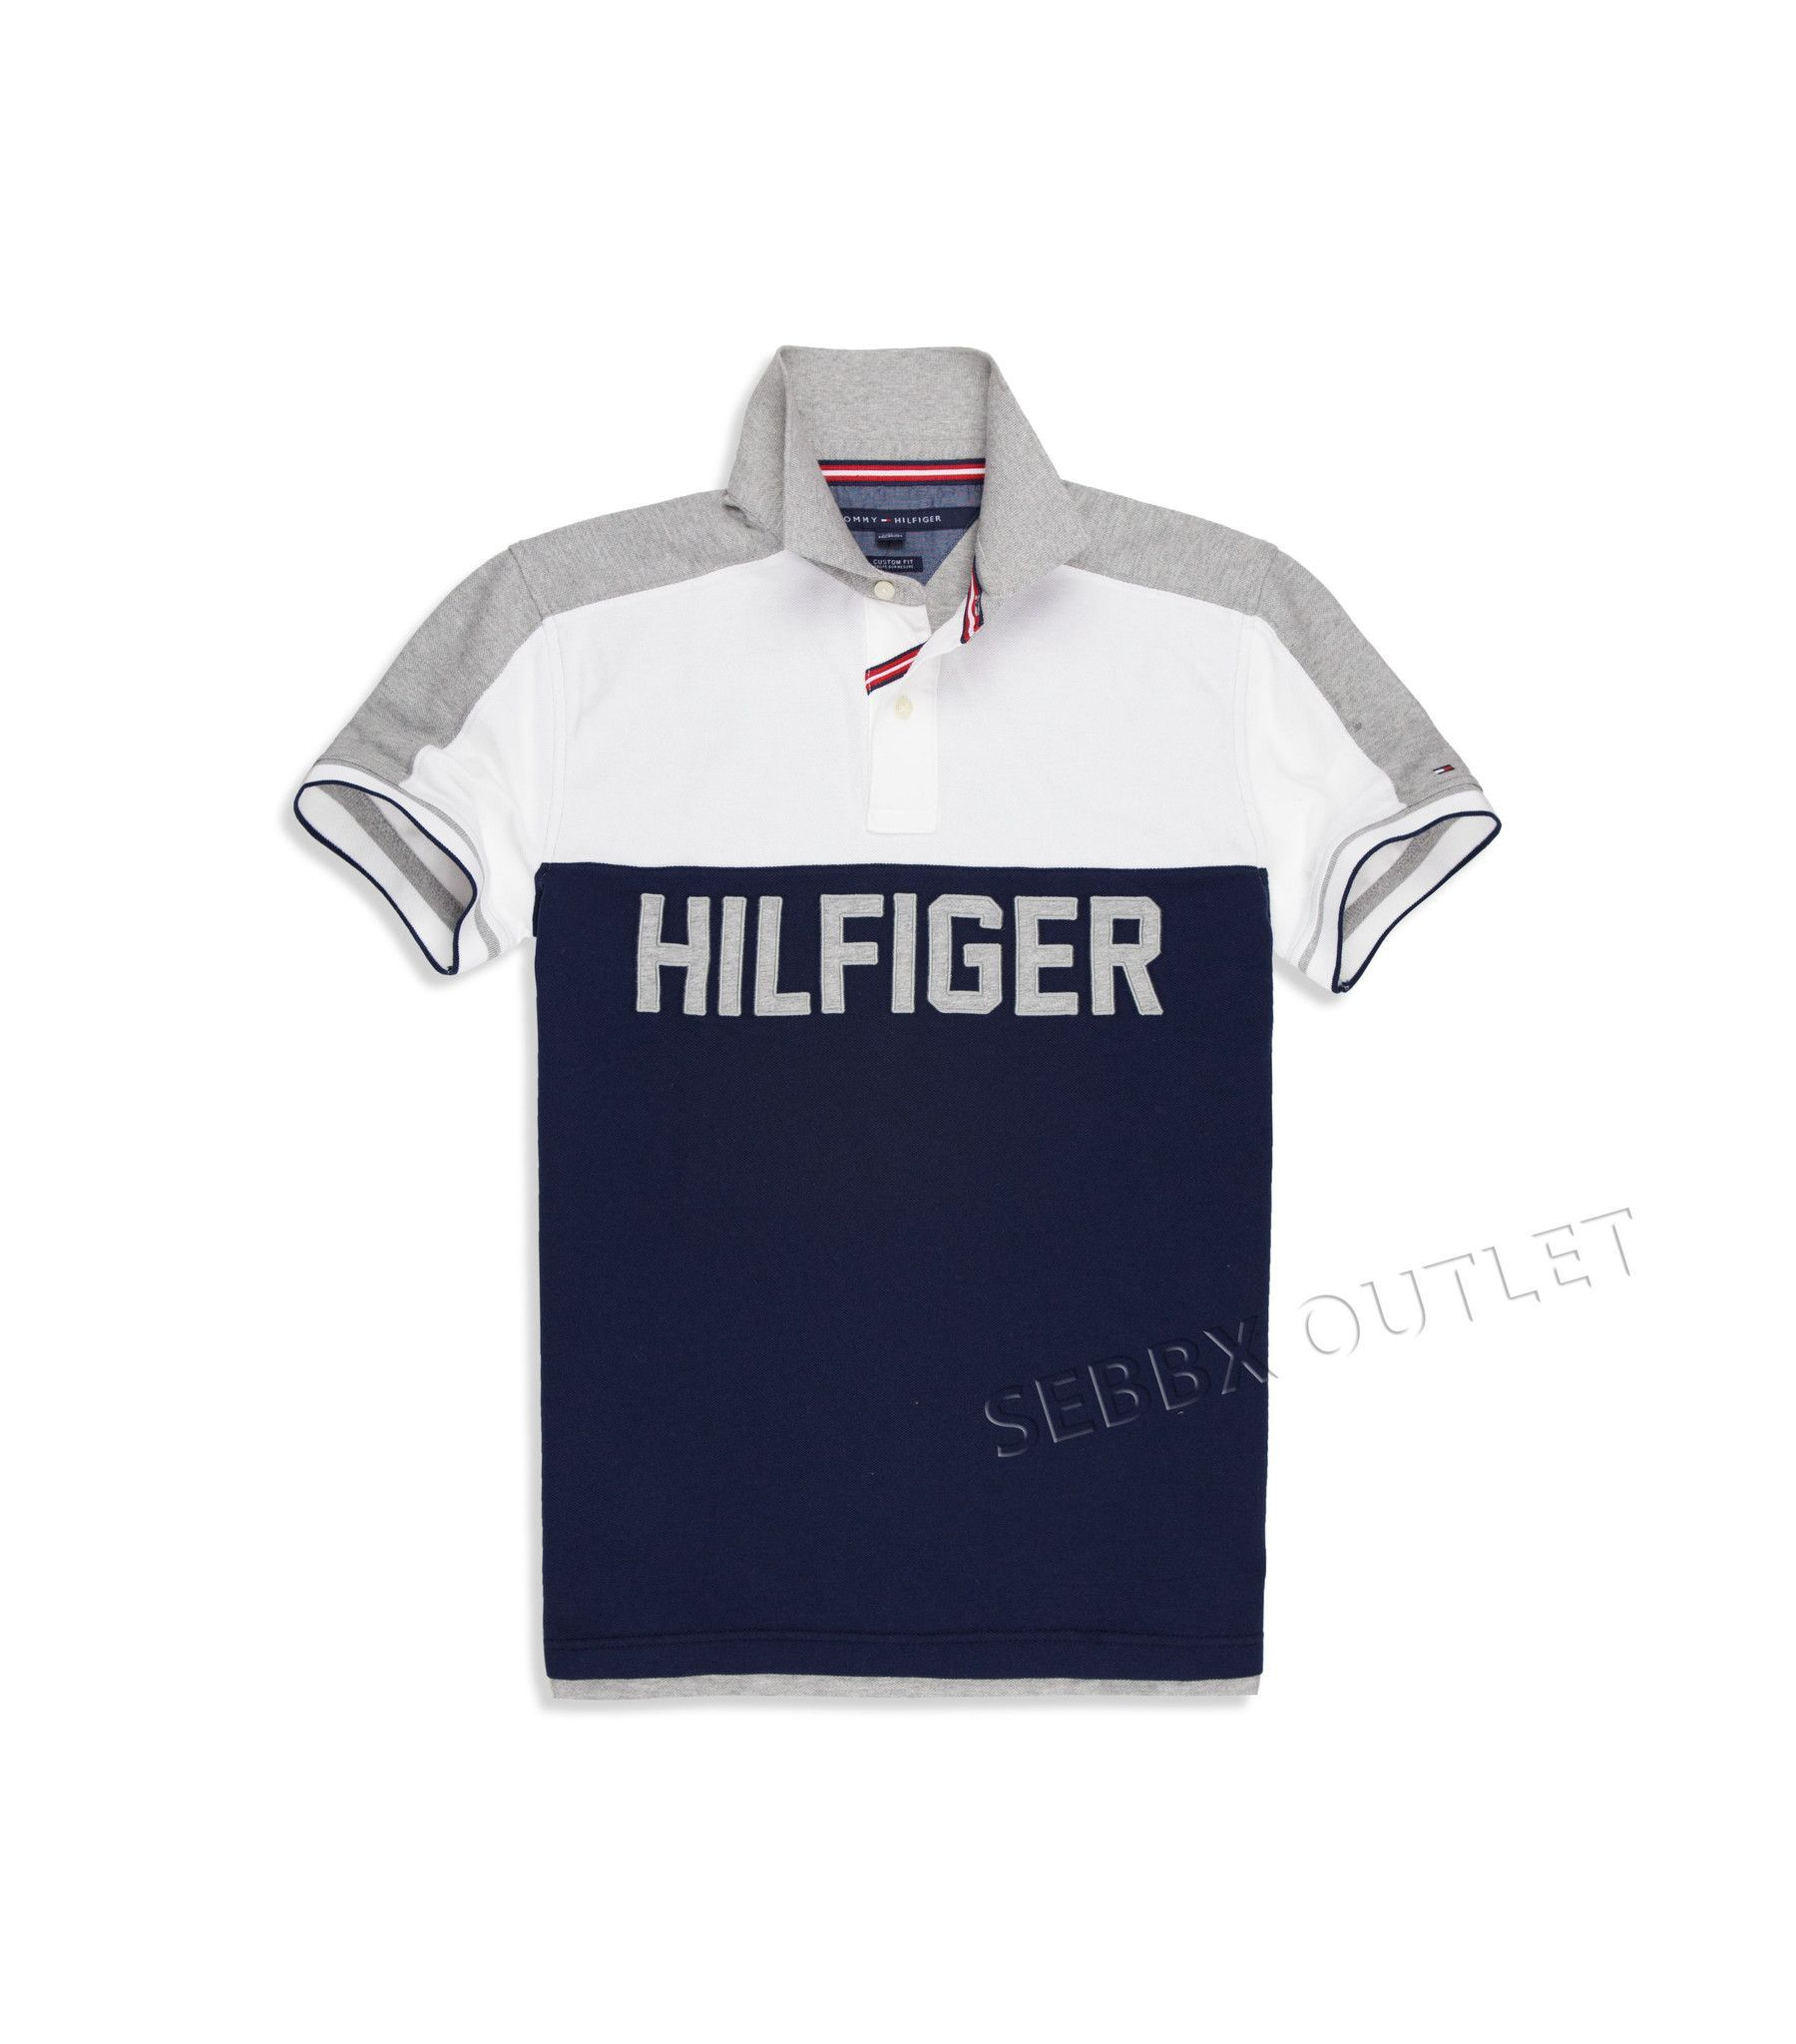 1d253562d Tommy Hilfiger Polo Shirt Custom Fit Gray Blue White Pieced Polo | Rugby  polos | Tommy hilfiger polo shirts, Custom shirts, Polo